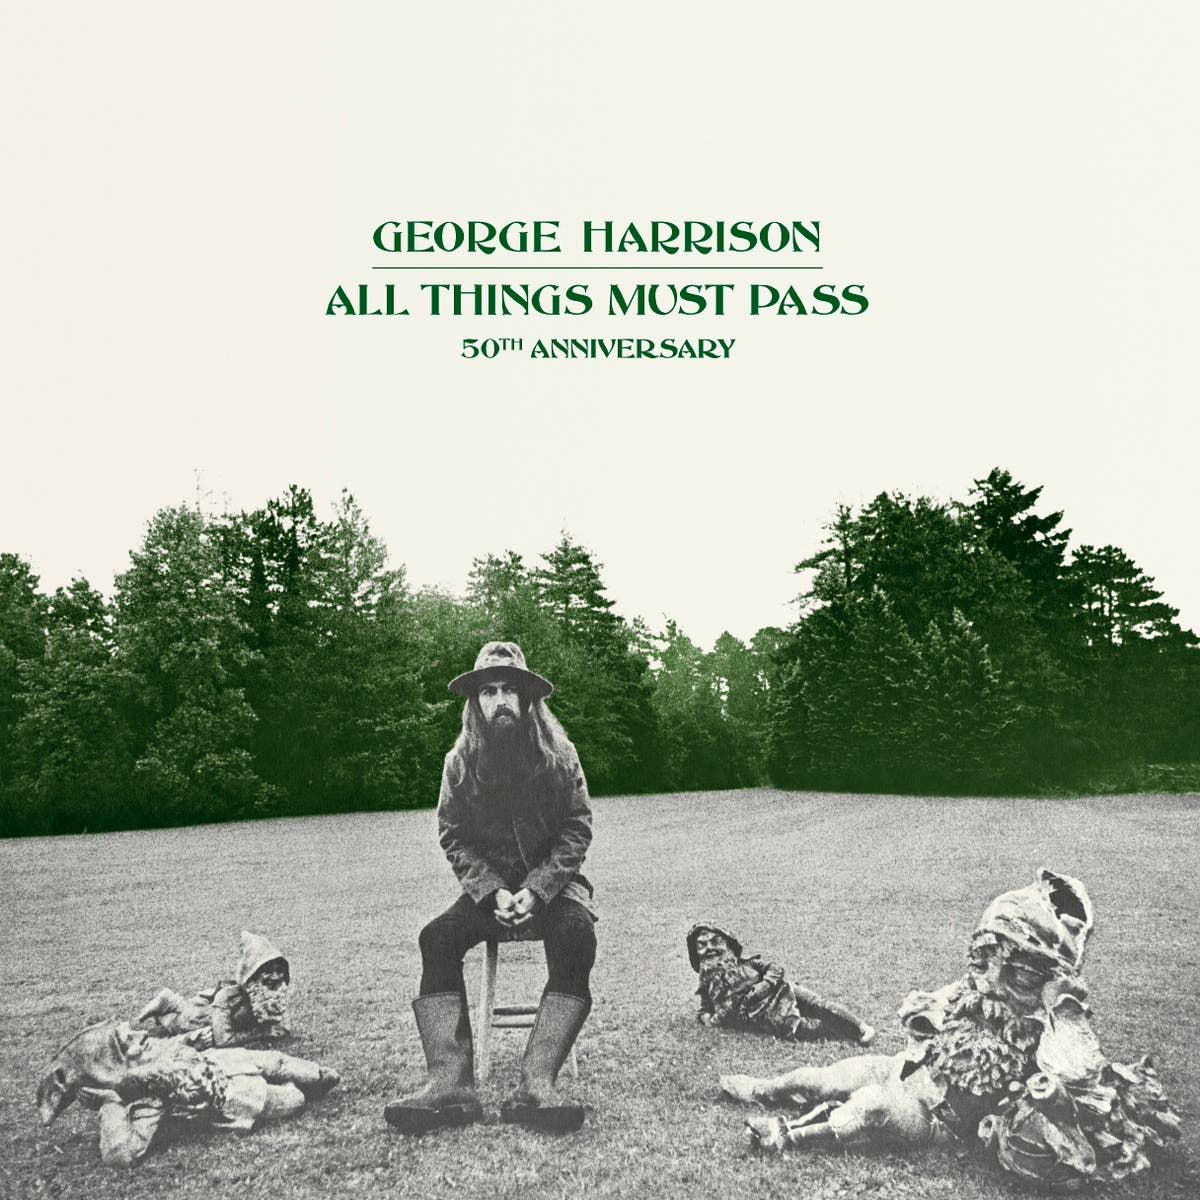 George Harrison's 'All Things Must Pass' hits a milestone